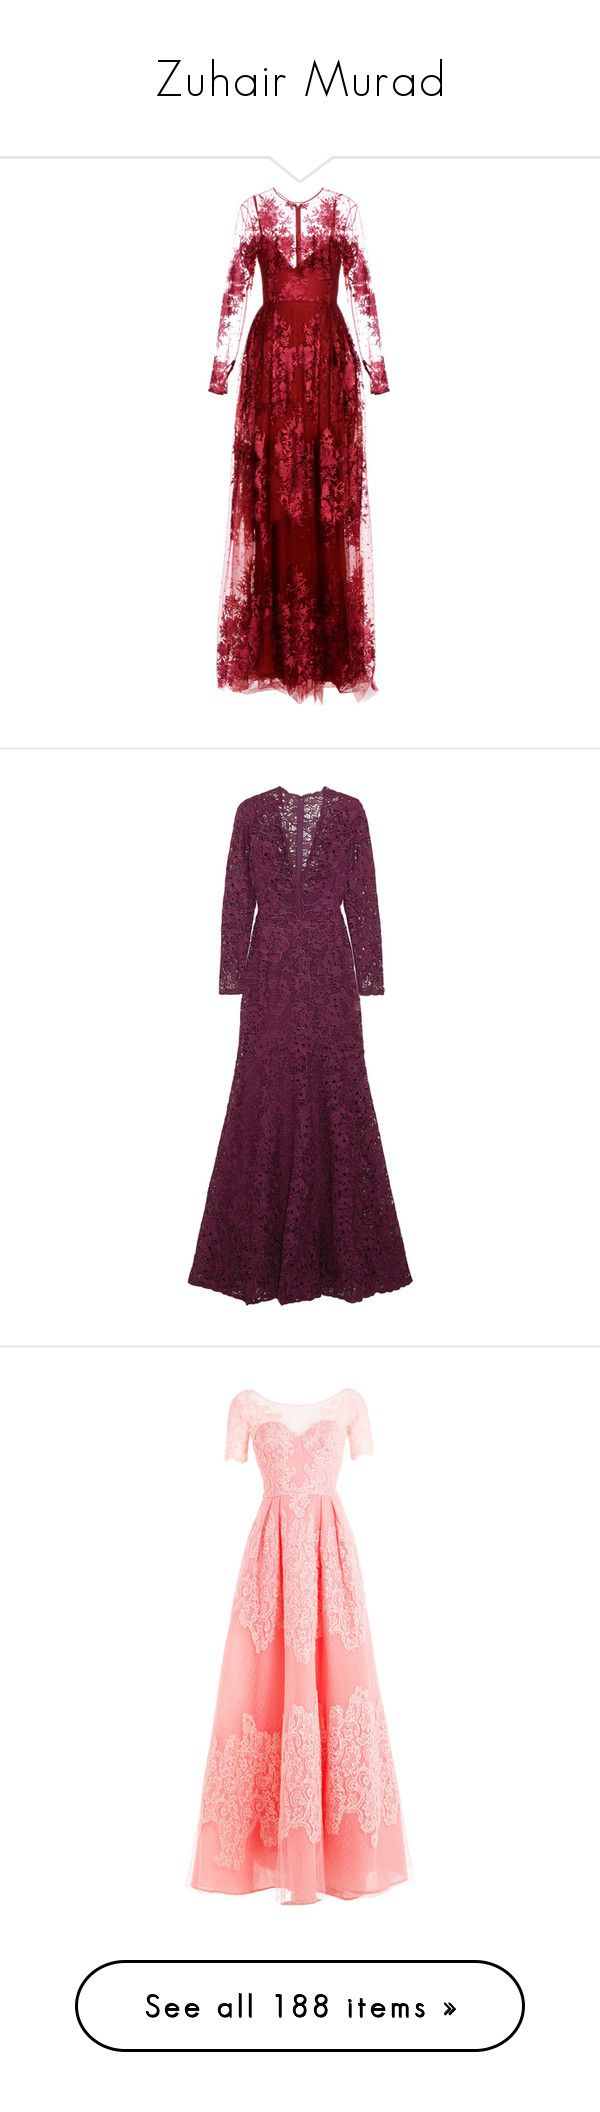 """""""Zuhair Murad"""" by shulamithbond on Polyvore featuring dresses, maroon, long dresses, embroidered dress, long sleeve day dresses, maroon long sleeve dress, long-sleeve maxi dress, gowns, gown and purple dresses"""